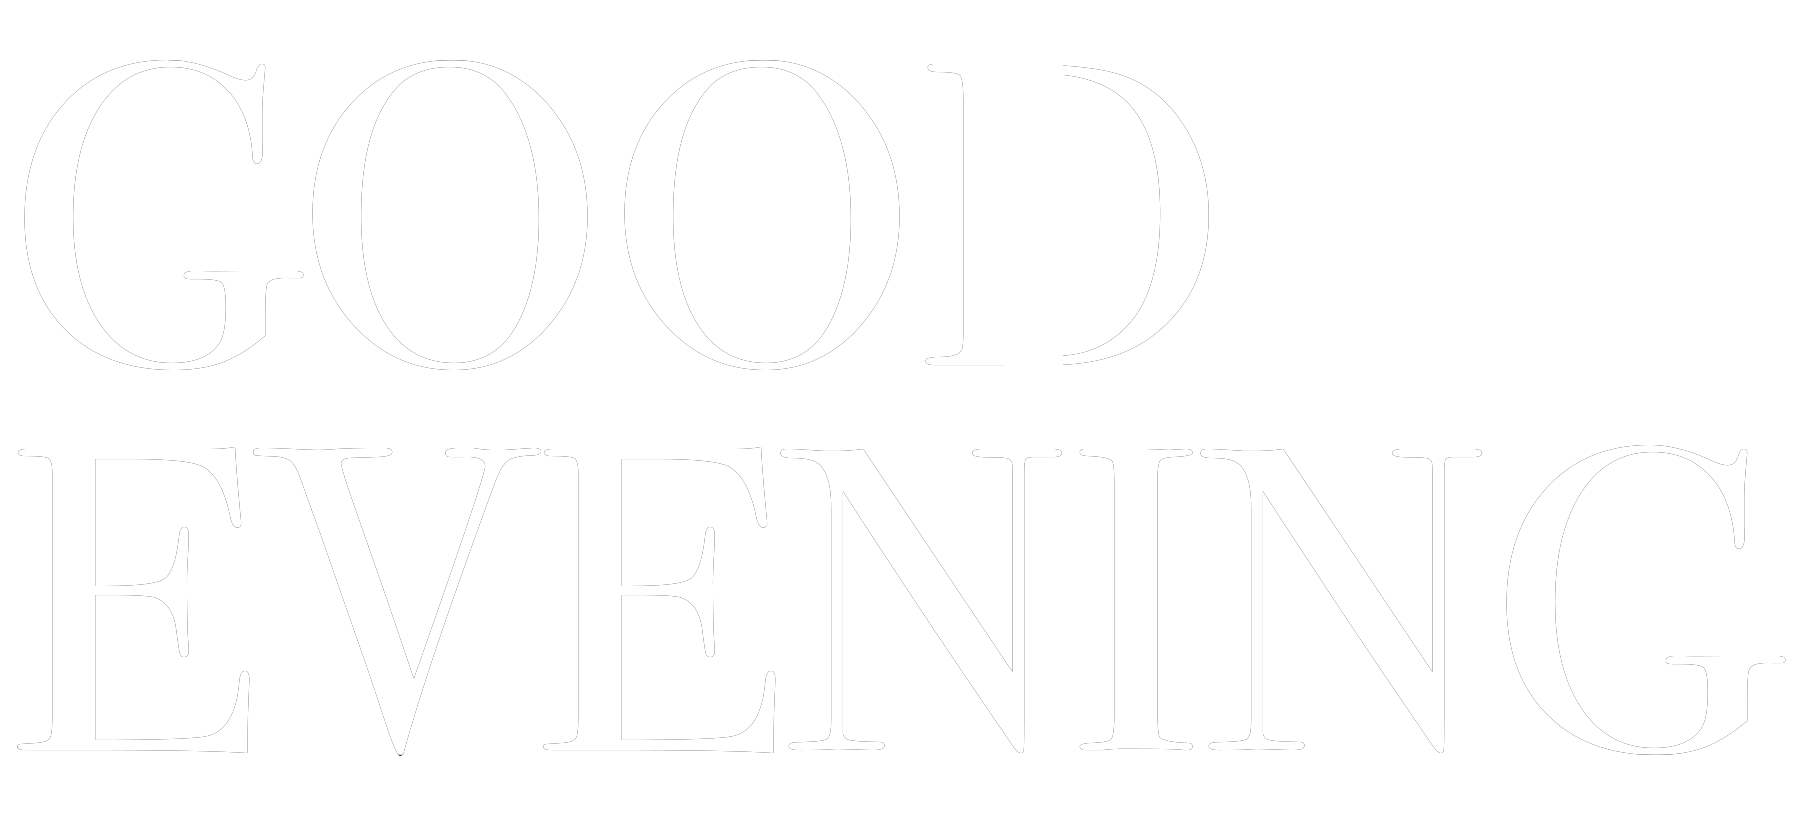 Good Evening_Logo Lockup_White.png